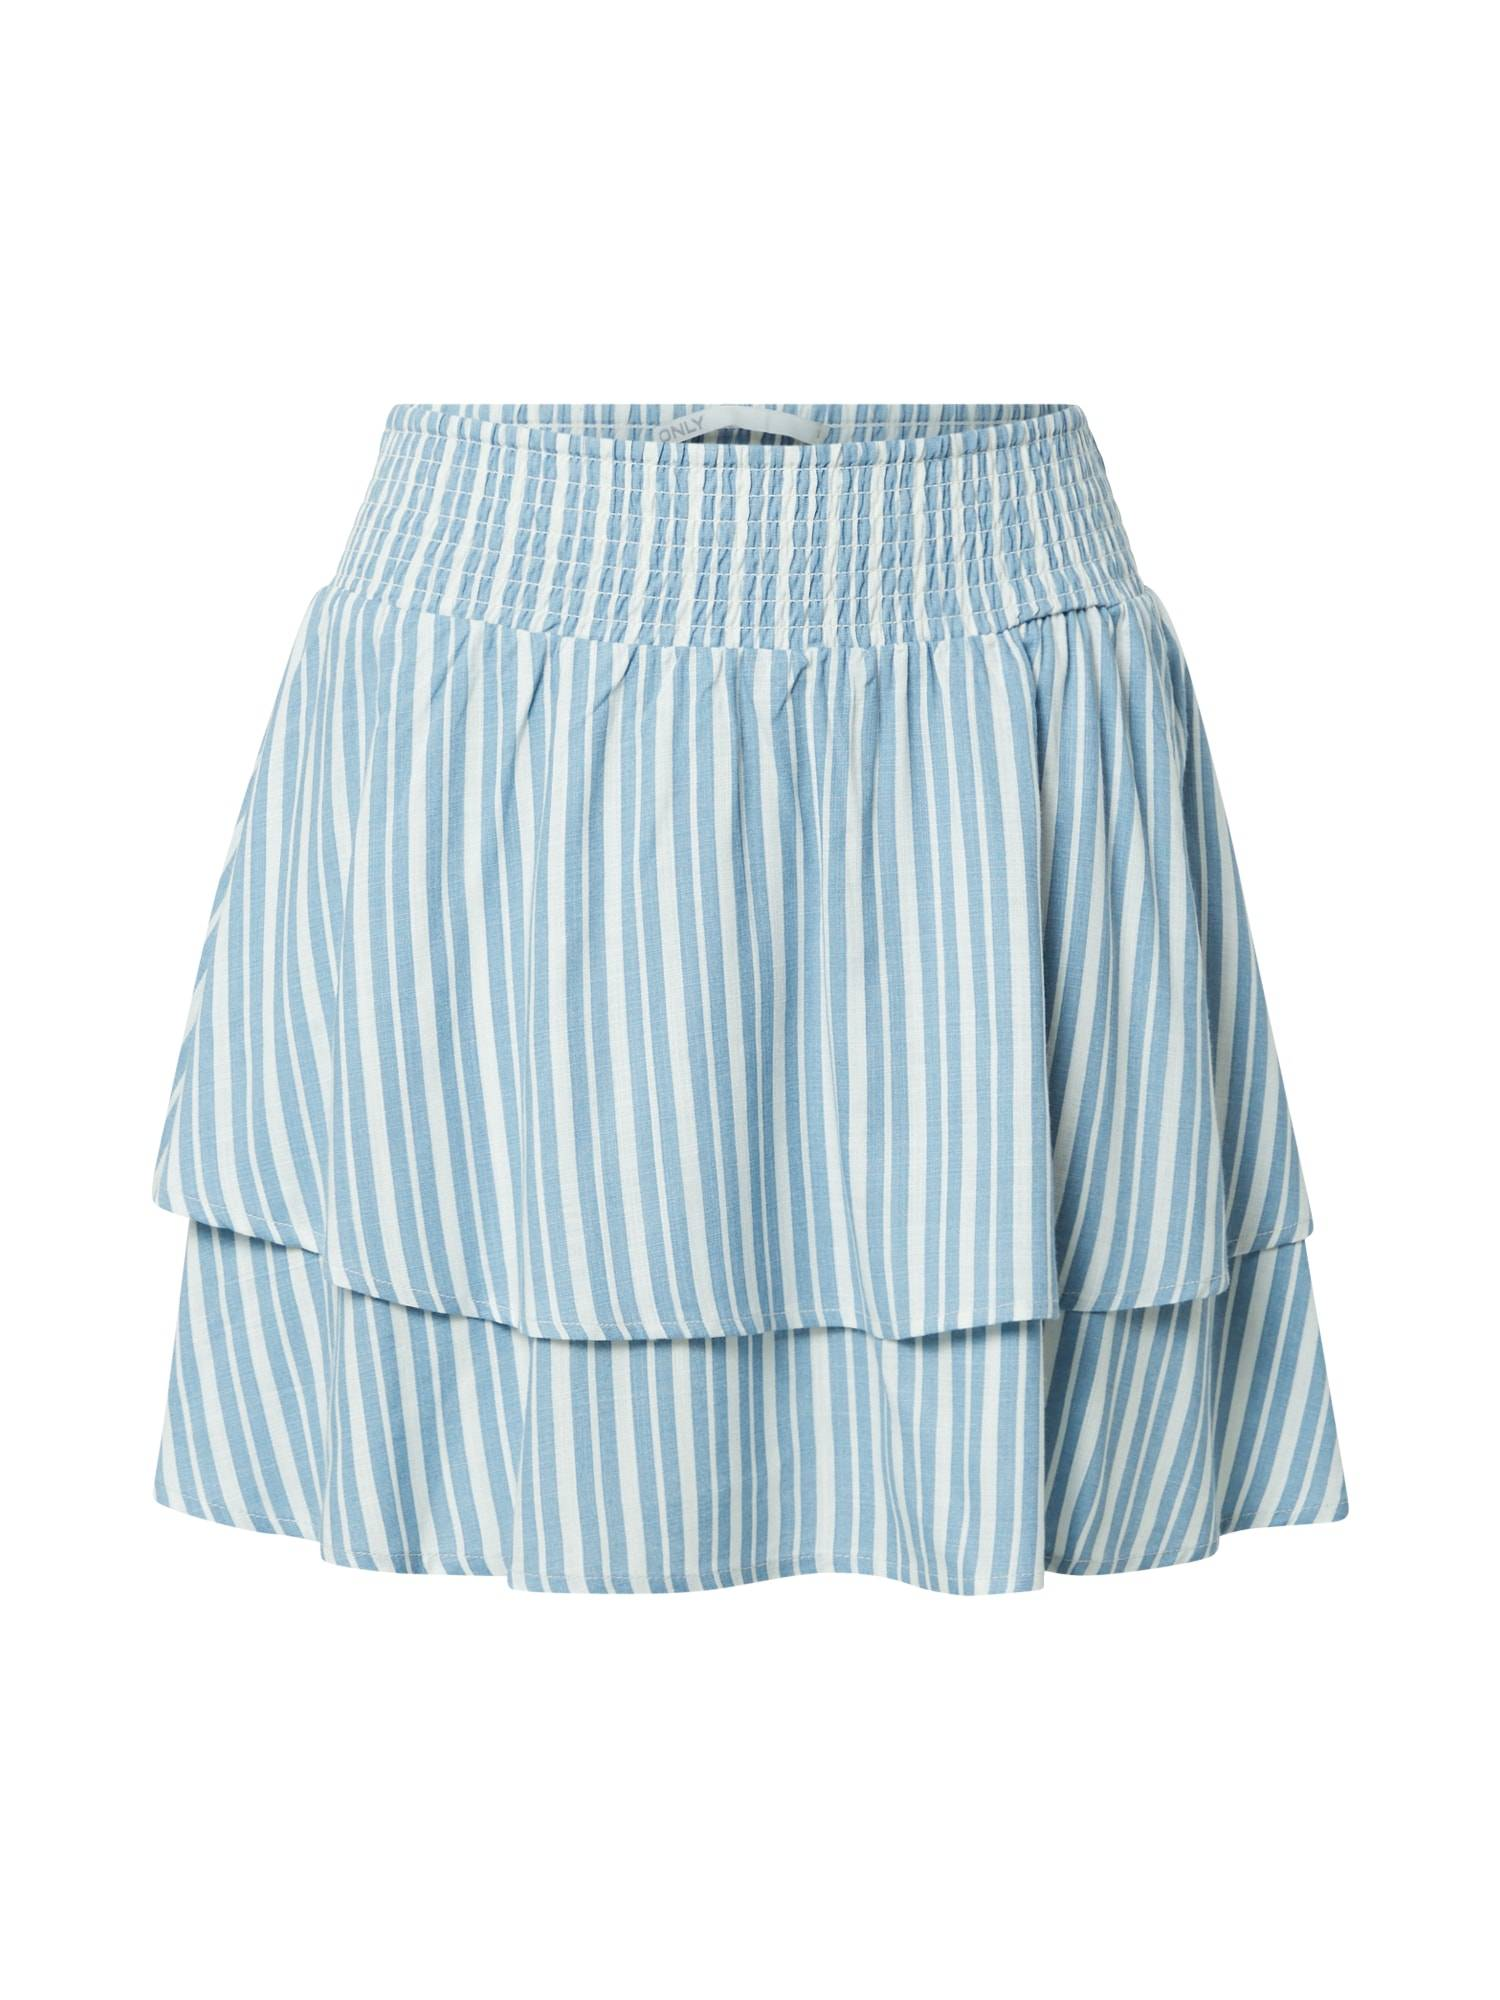 ONLY Jupe 'AURORA'  - Bleu - Taille: XS - female